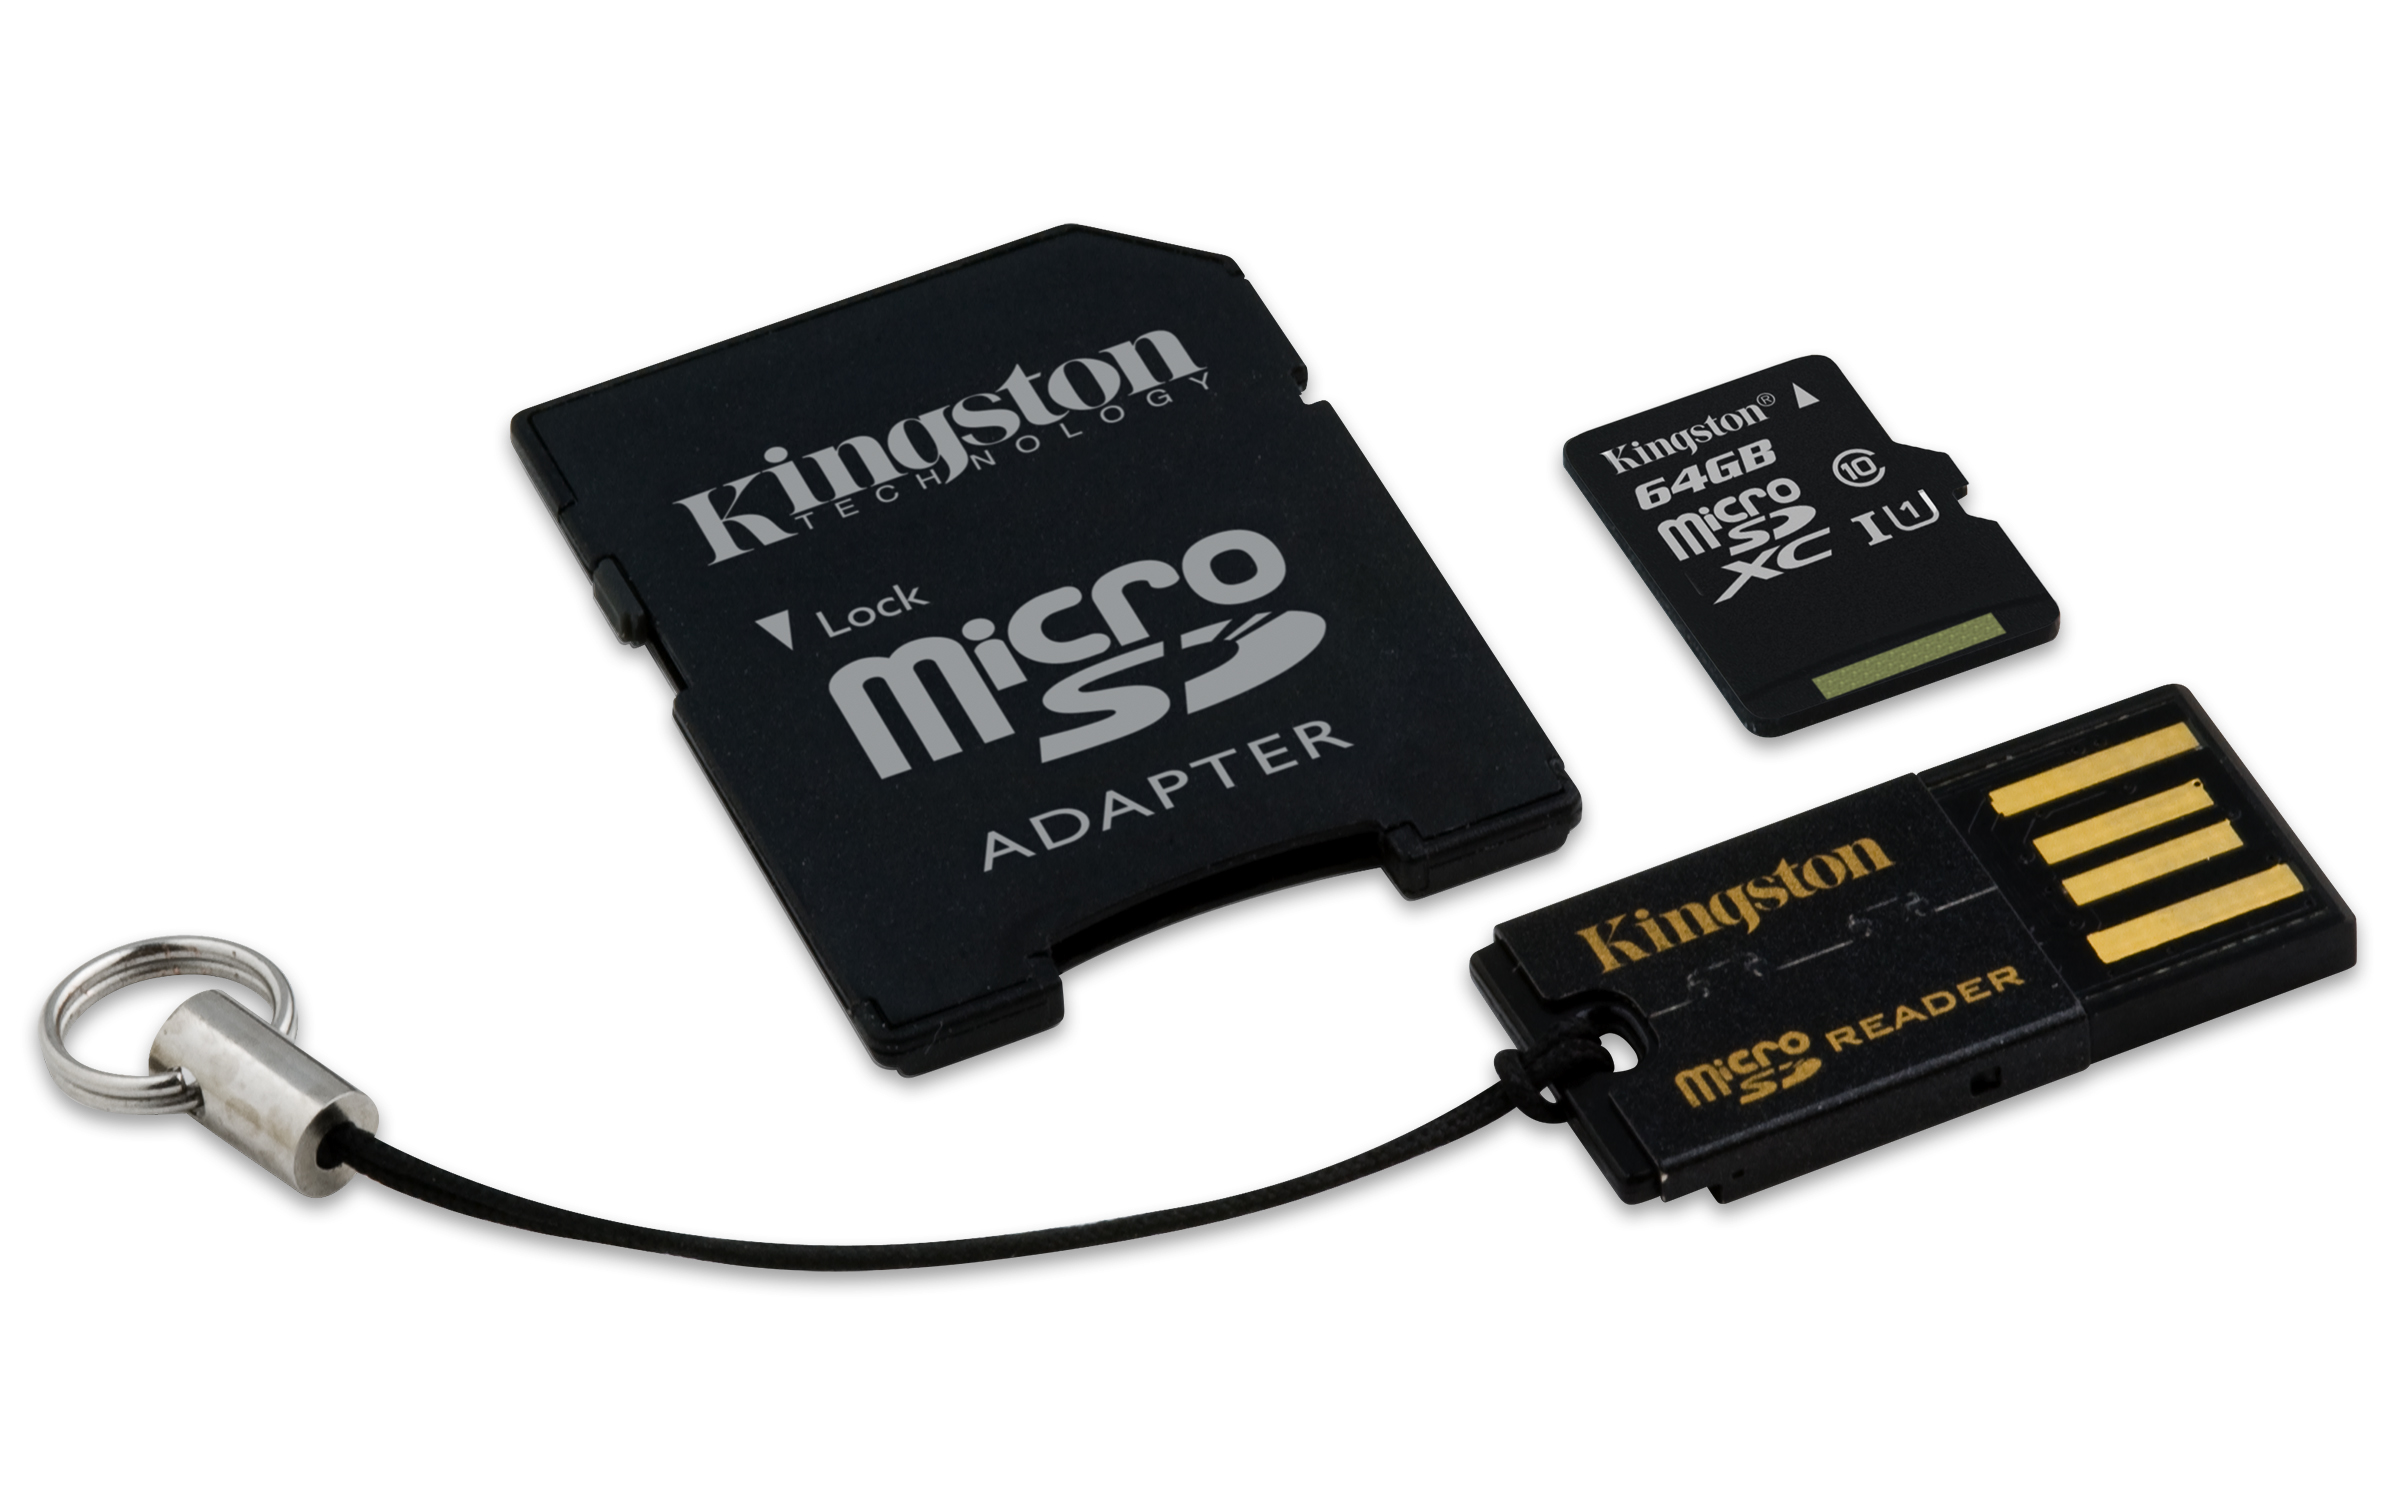 mobility kit micro sd card usb sd adapter kingston. Black Bedroom Furniture Sets. Home Design Ideas